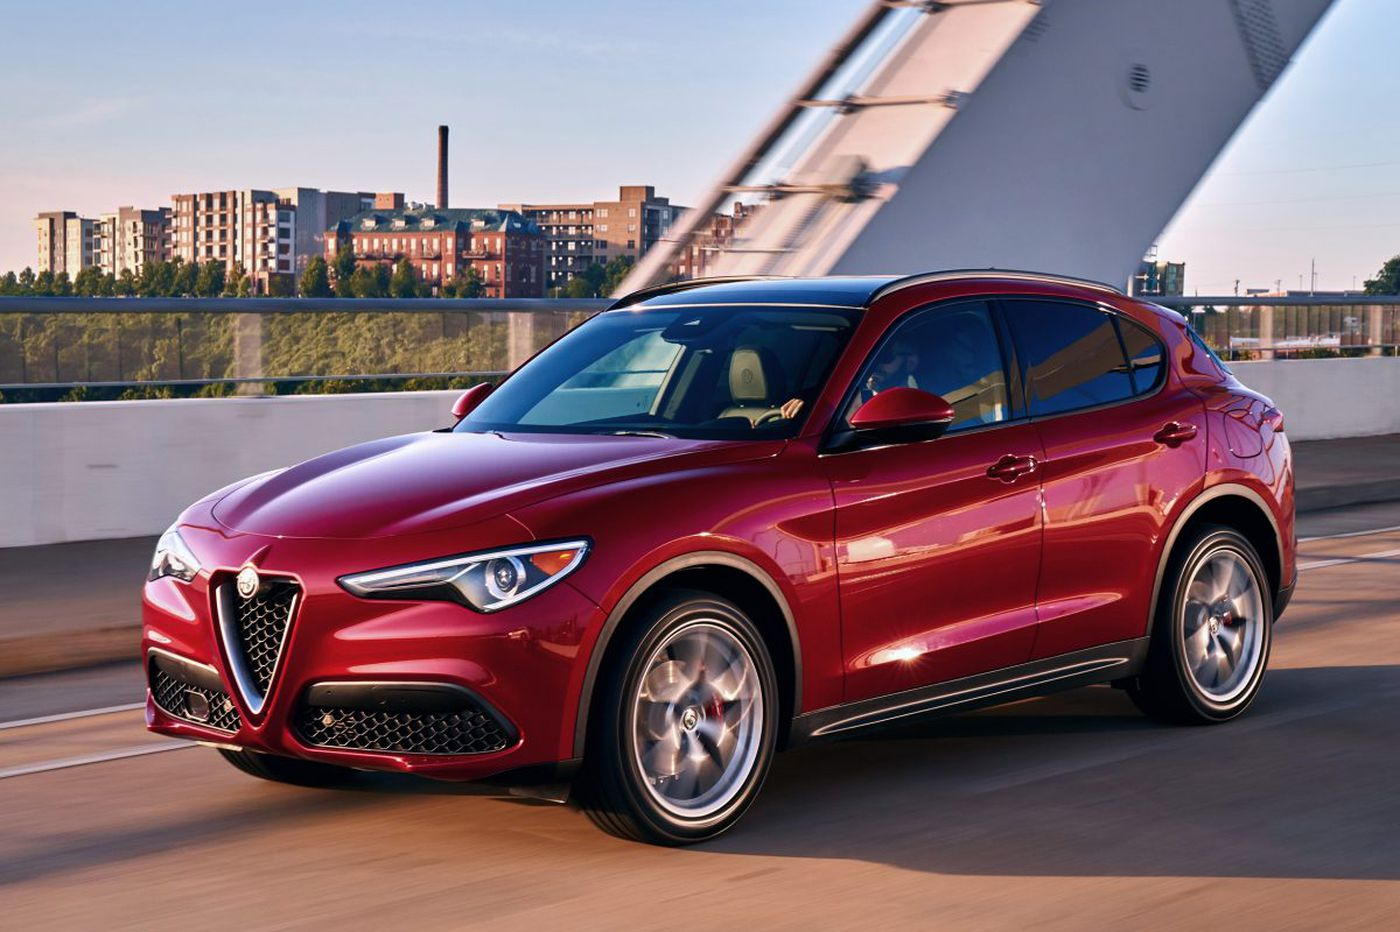 2018 Alfa Romeo Stelvio: As fun as its unusual name